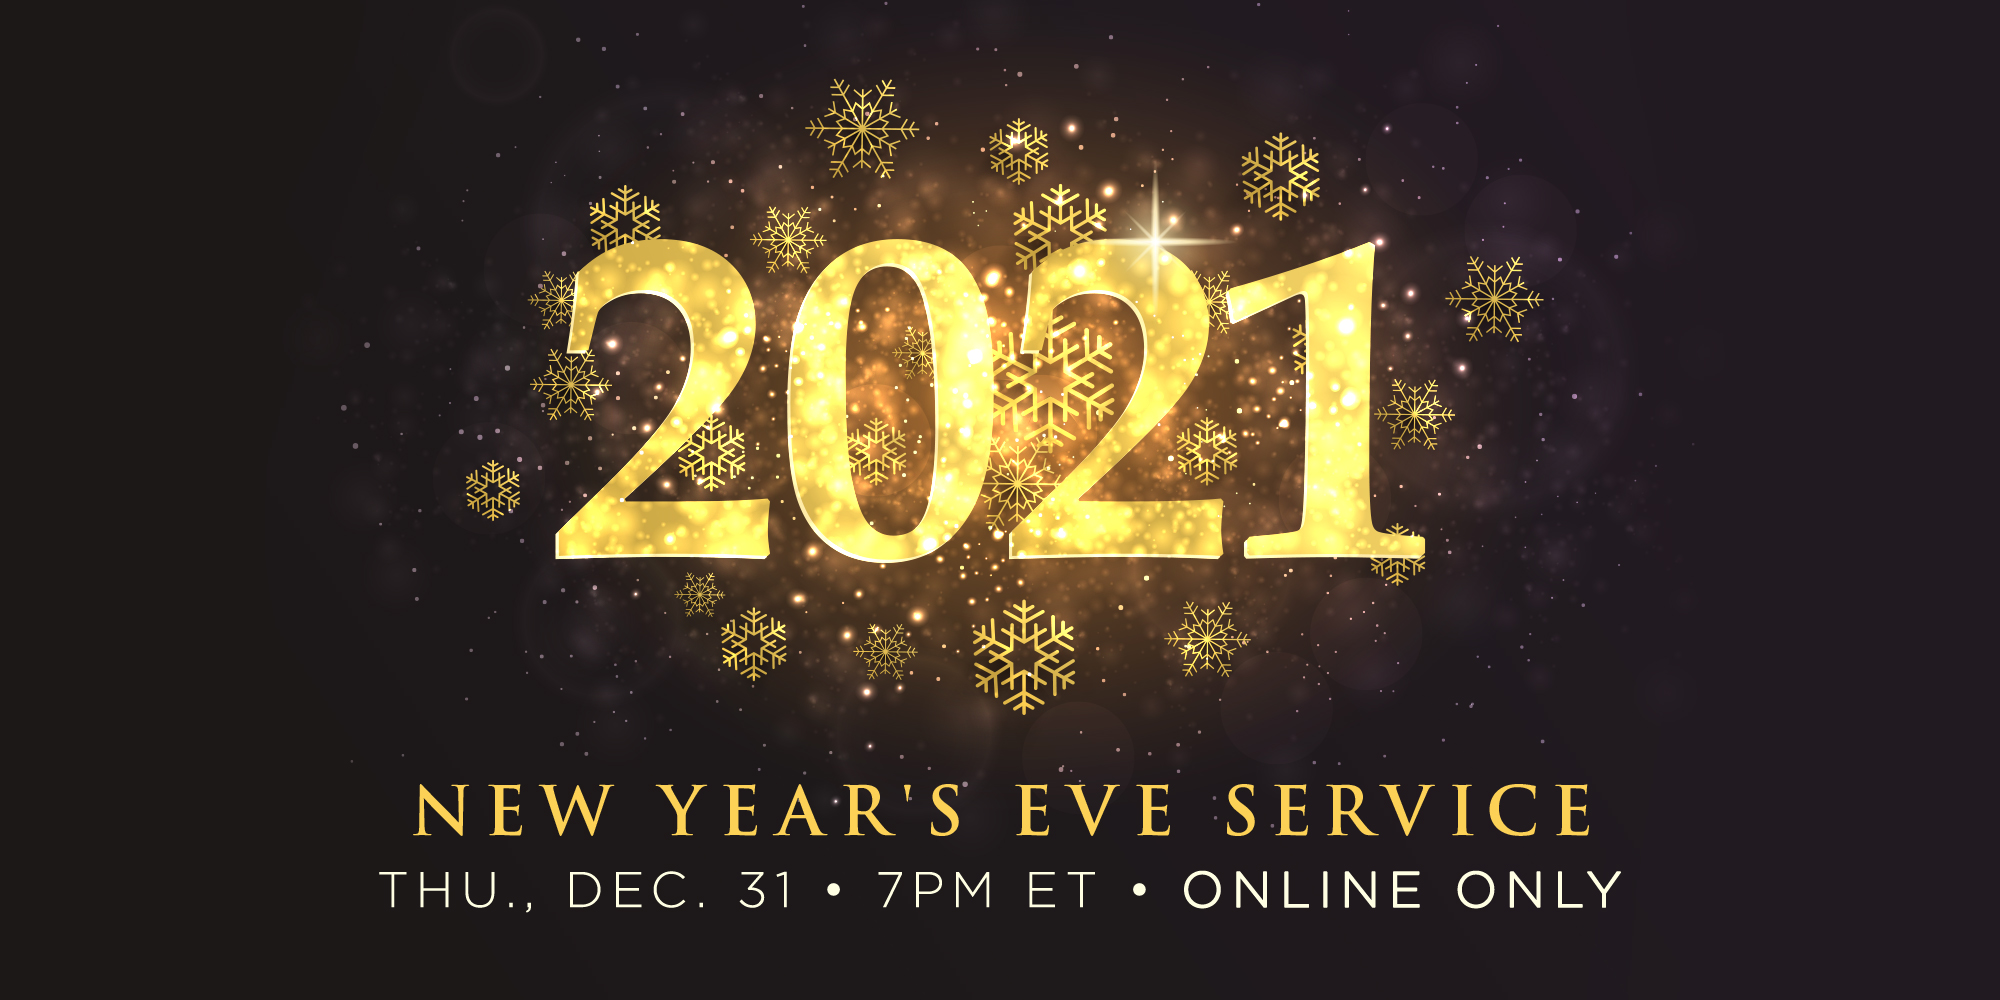 2021 New Year's Eve Service Thu., Dec. 31 7PM ET Streaming Live Online